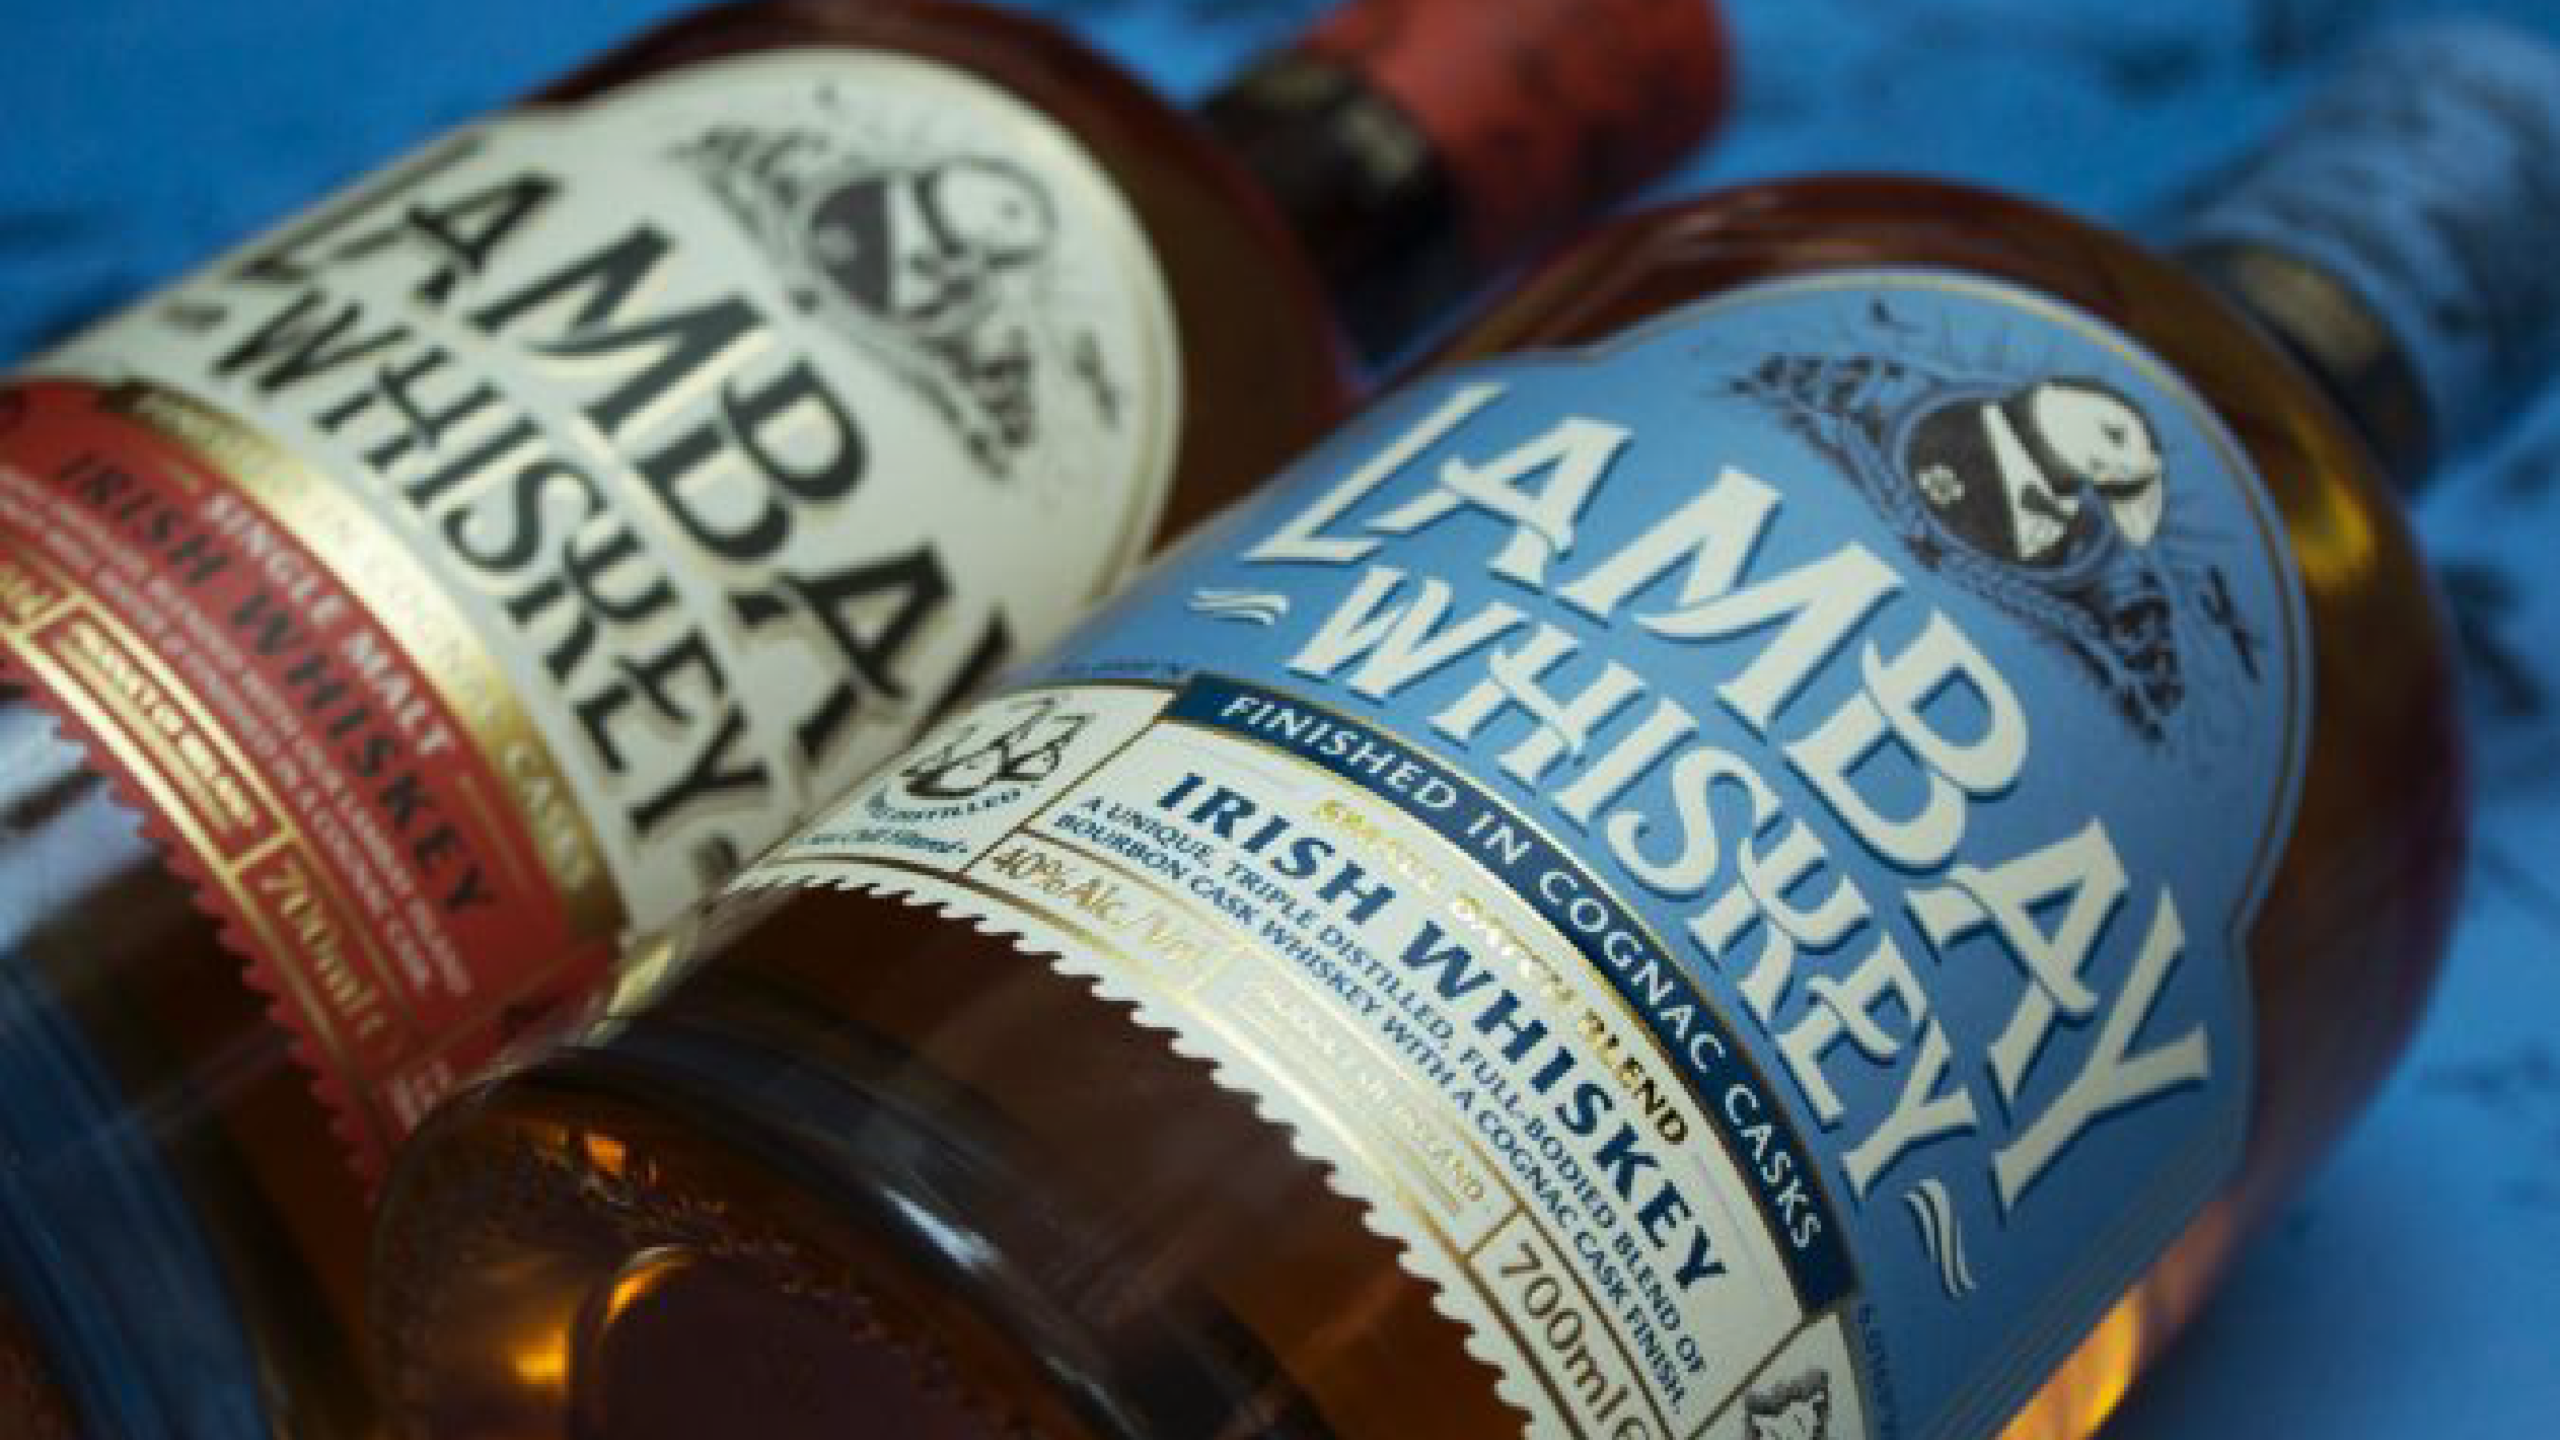 Lambay Whiskey bottles